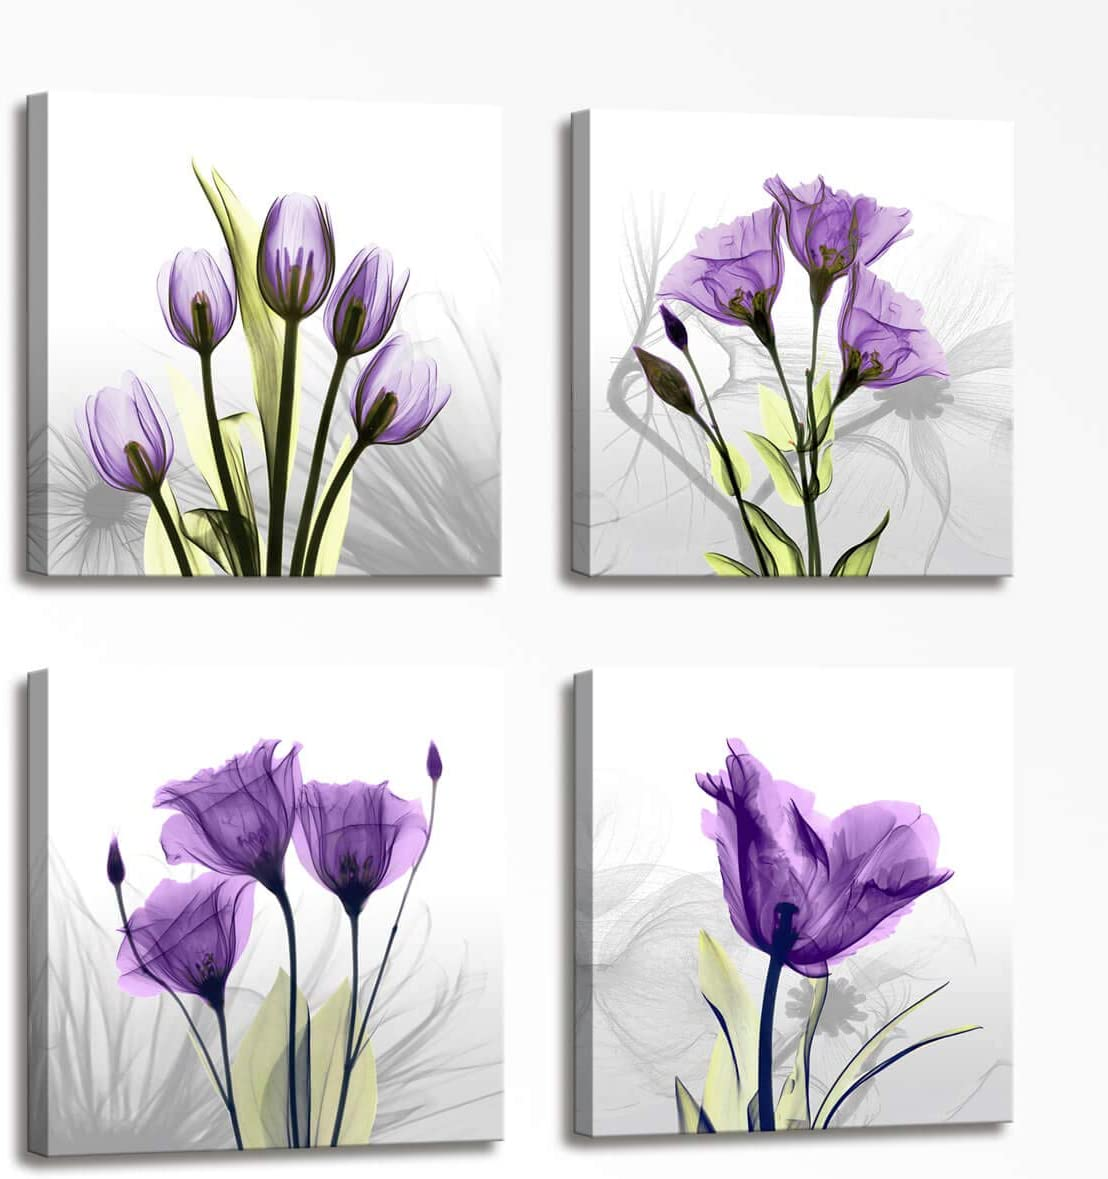 Home Decorations for Living Room Floral Composition - 4 Panels Purple Elegant Tulip Flowers Painting Canvas Prints Modern Large Canvas Wall Art Framed Art for Bedroom Office Decor 16x16 inch 4pcs/Set